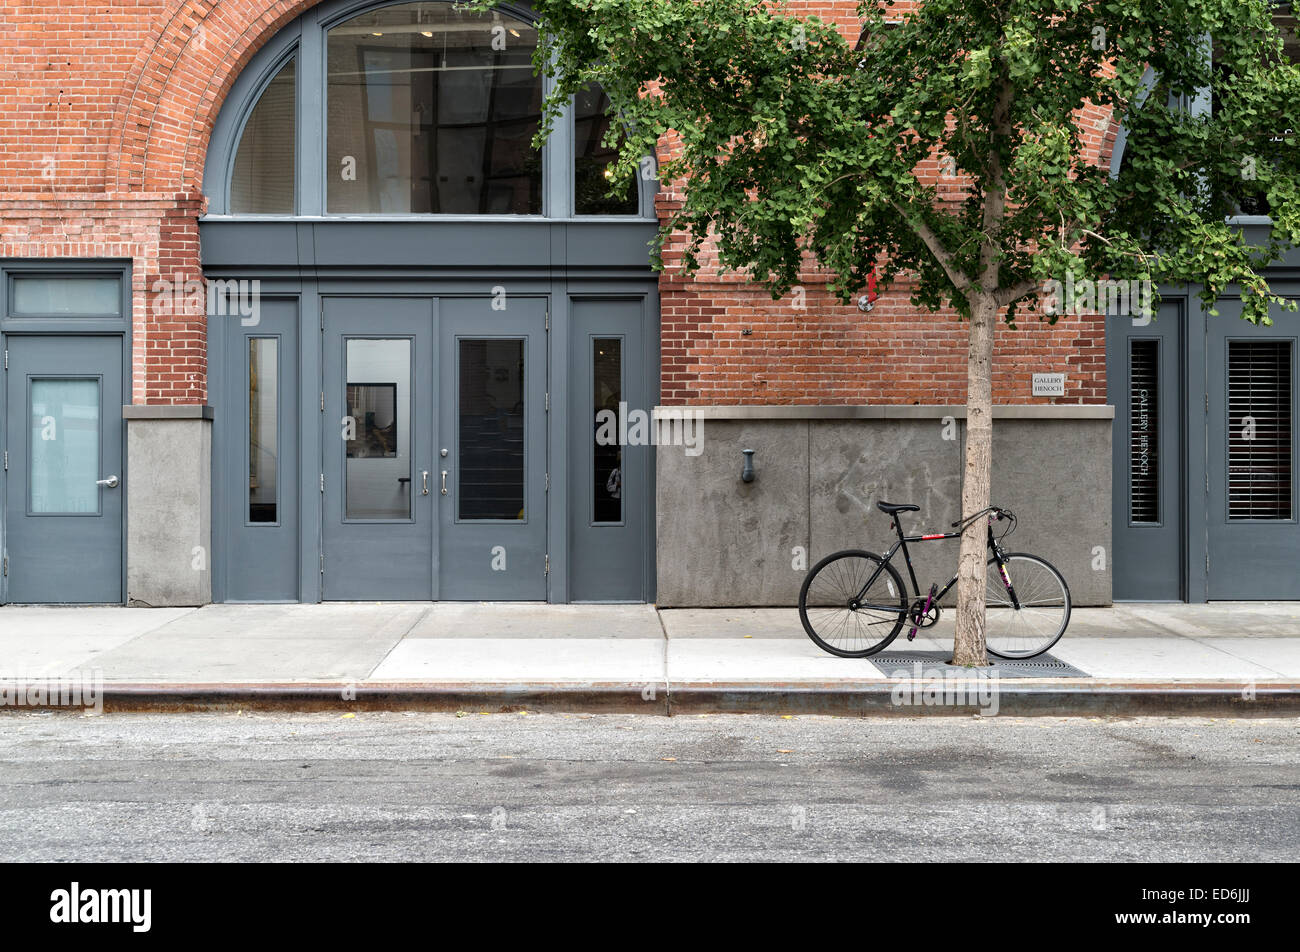 Arched Double Entry Doors And Front Facade, In The Chelsea Art Gallery  District Of Manhattan, New York City, Bike Chained To A T